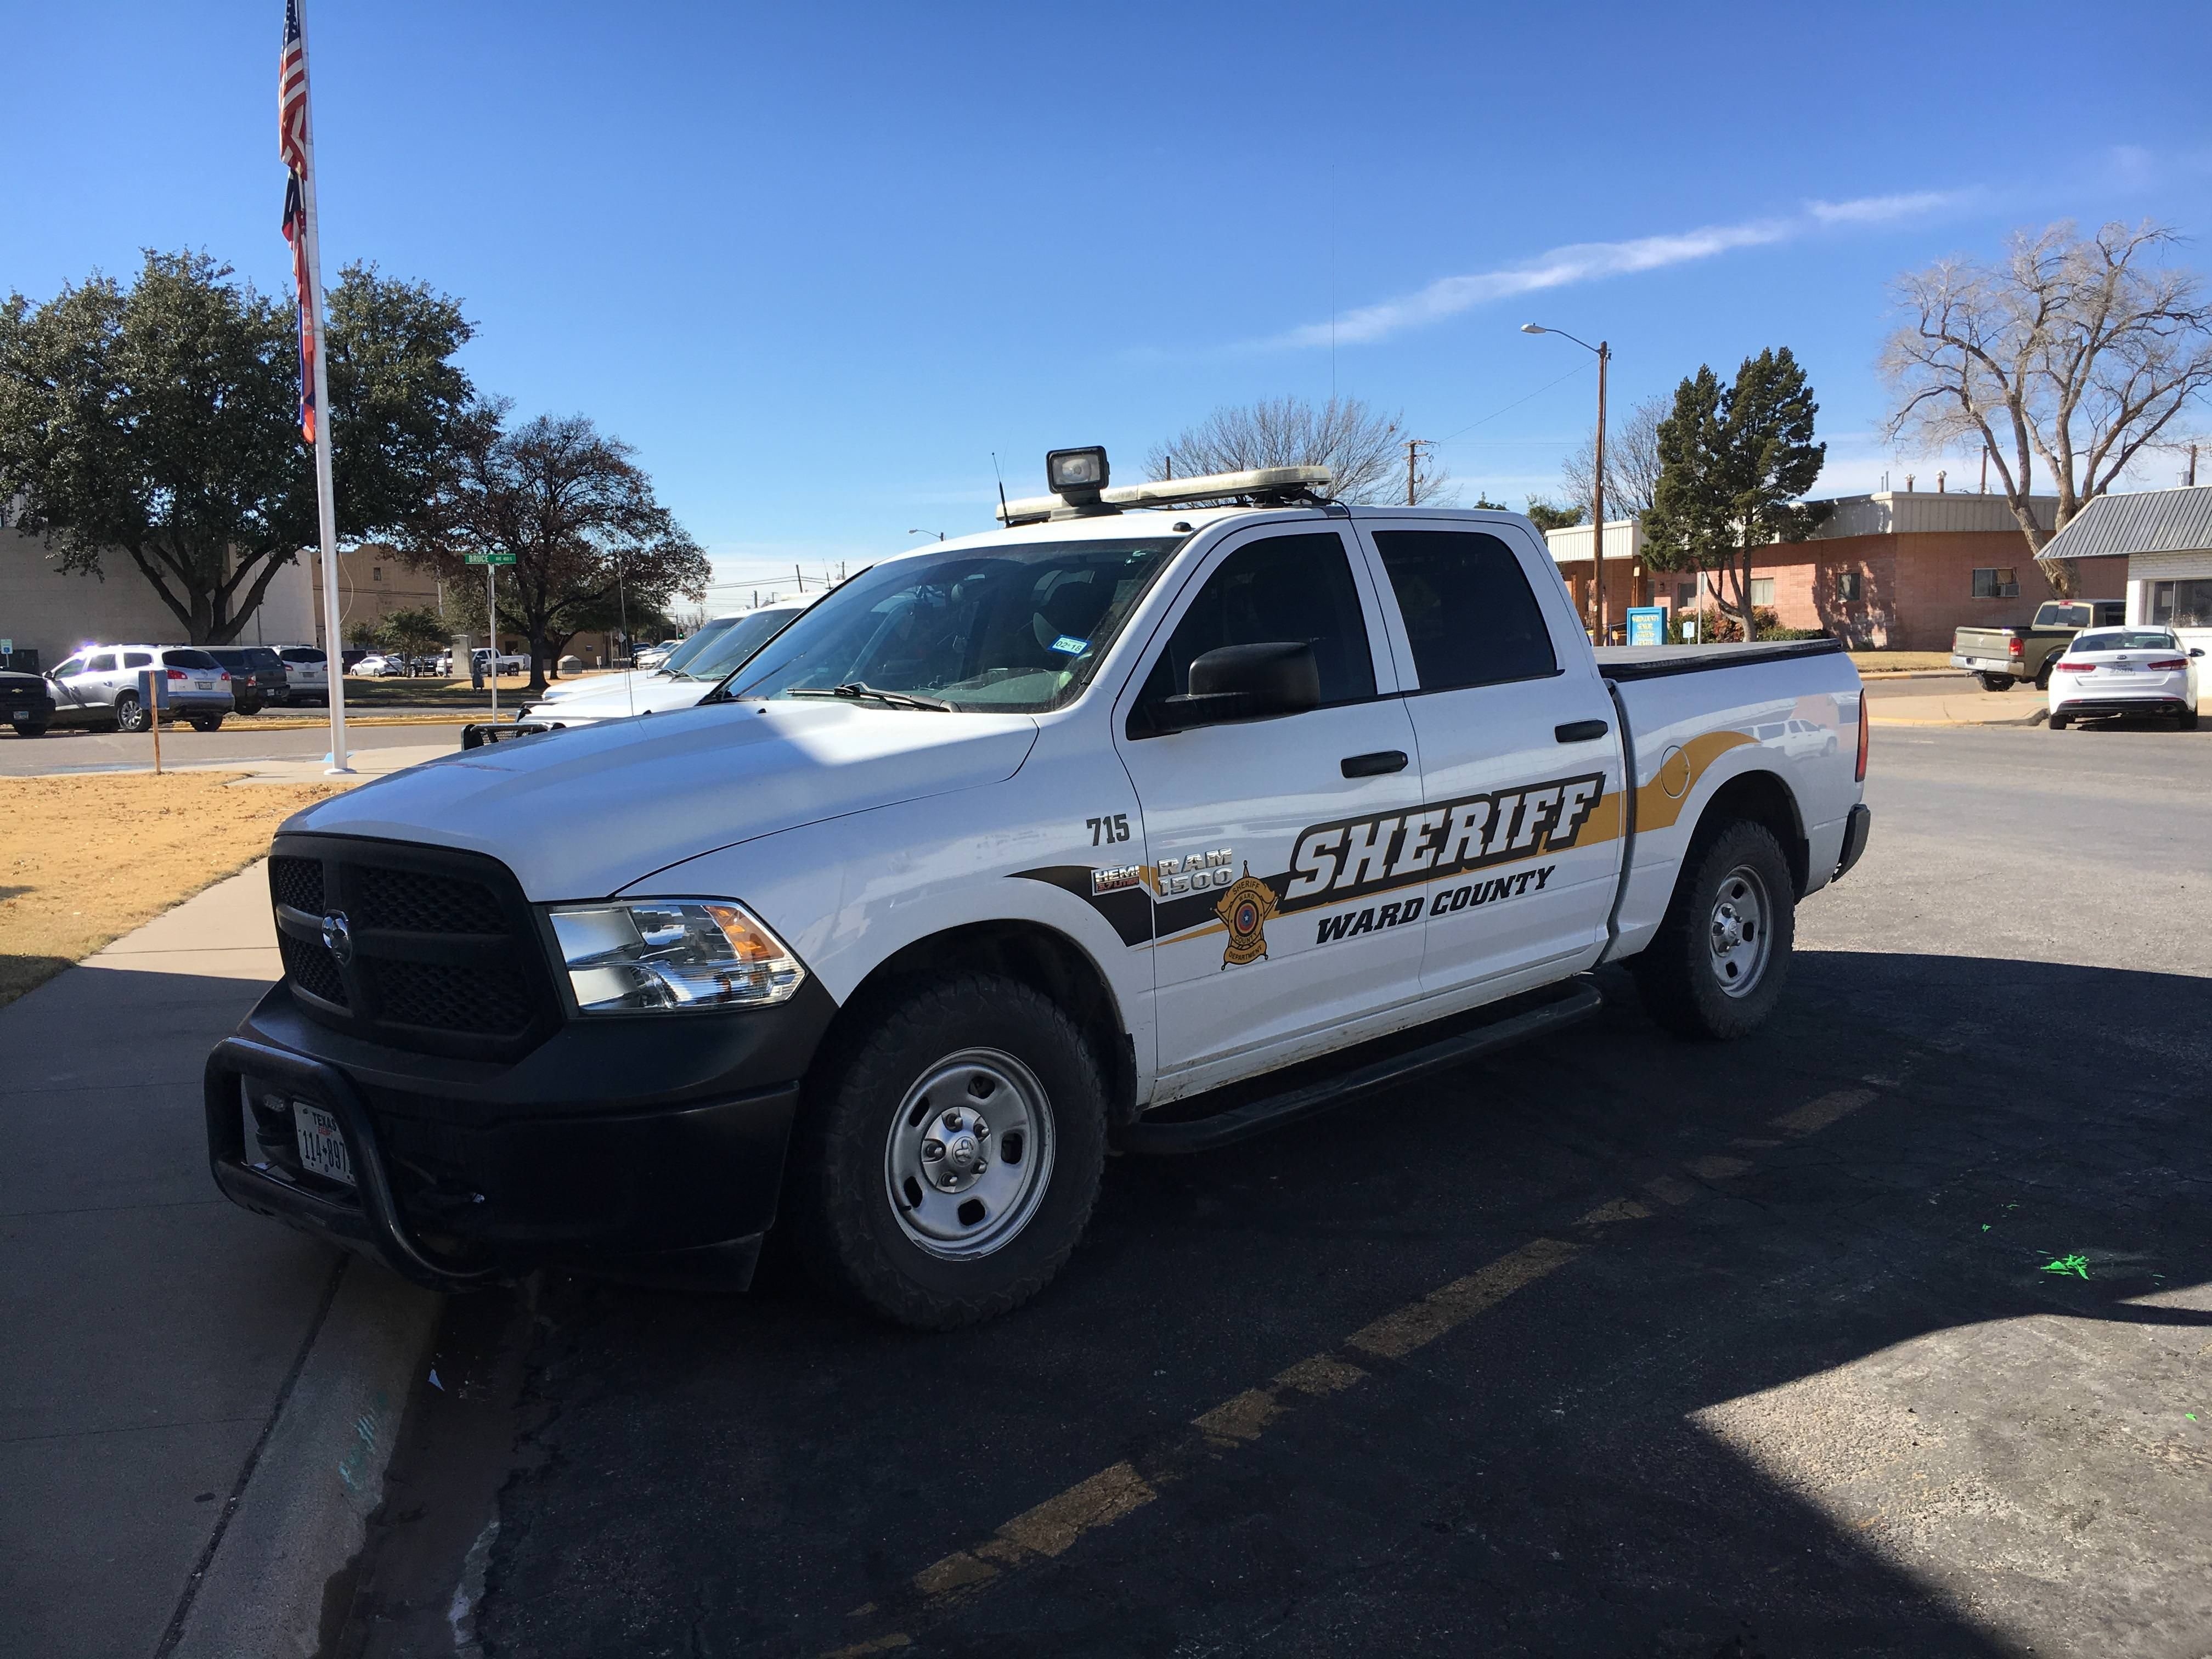 Ward County Sheriff S Office Ram Truck Texas Police Truck Emergency Vehicles Police Cars